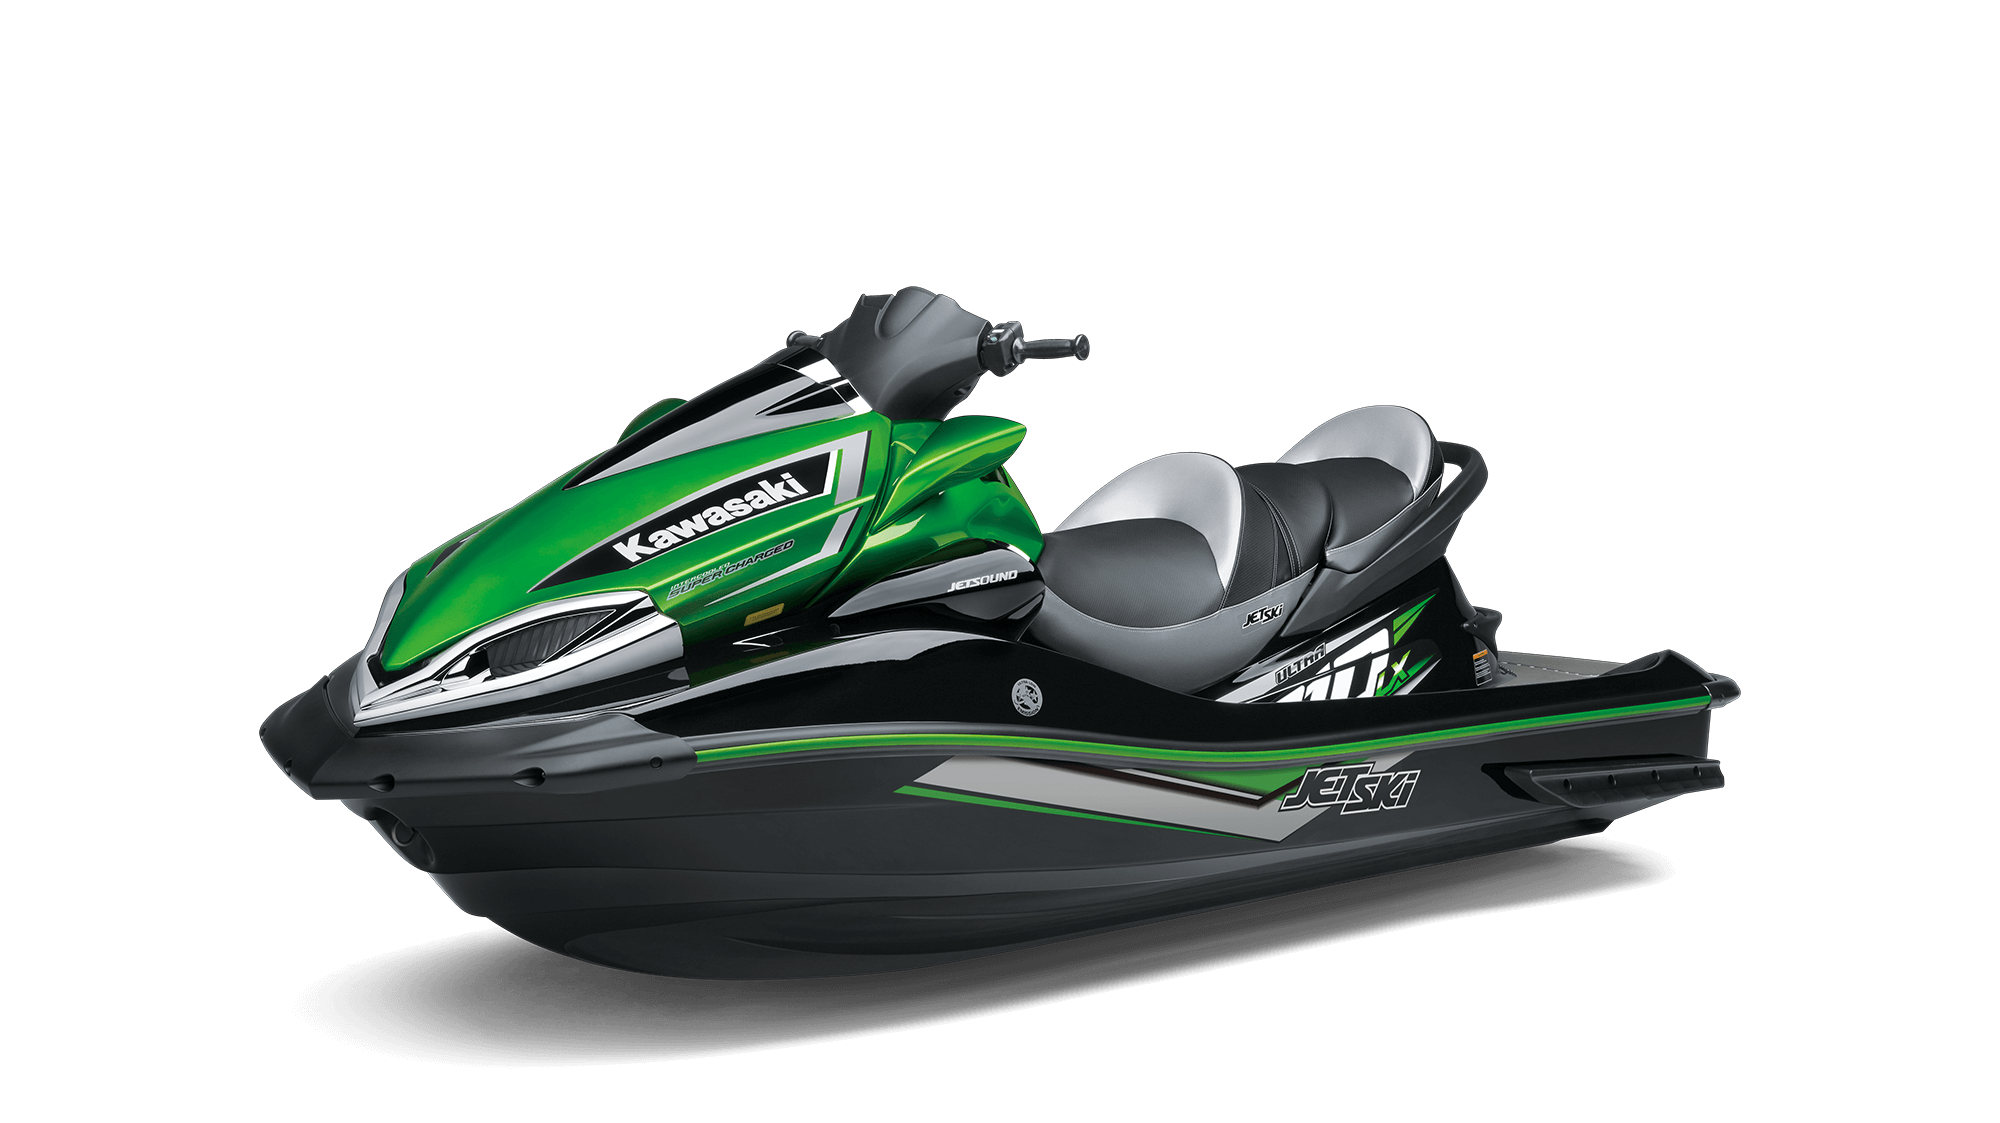 2019 Jet Ski Ultra 310lx Jet Ski Watercraft By Kawasaki